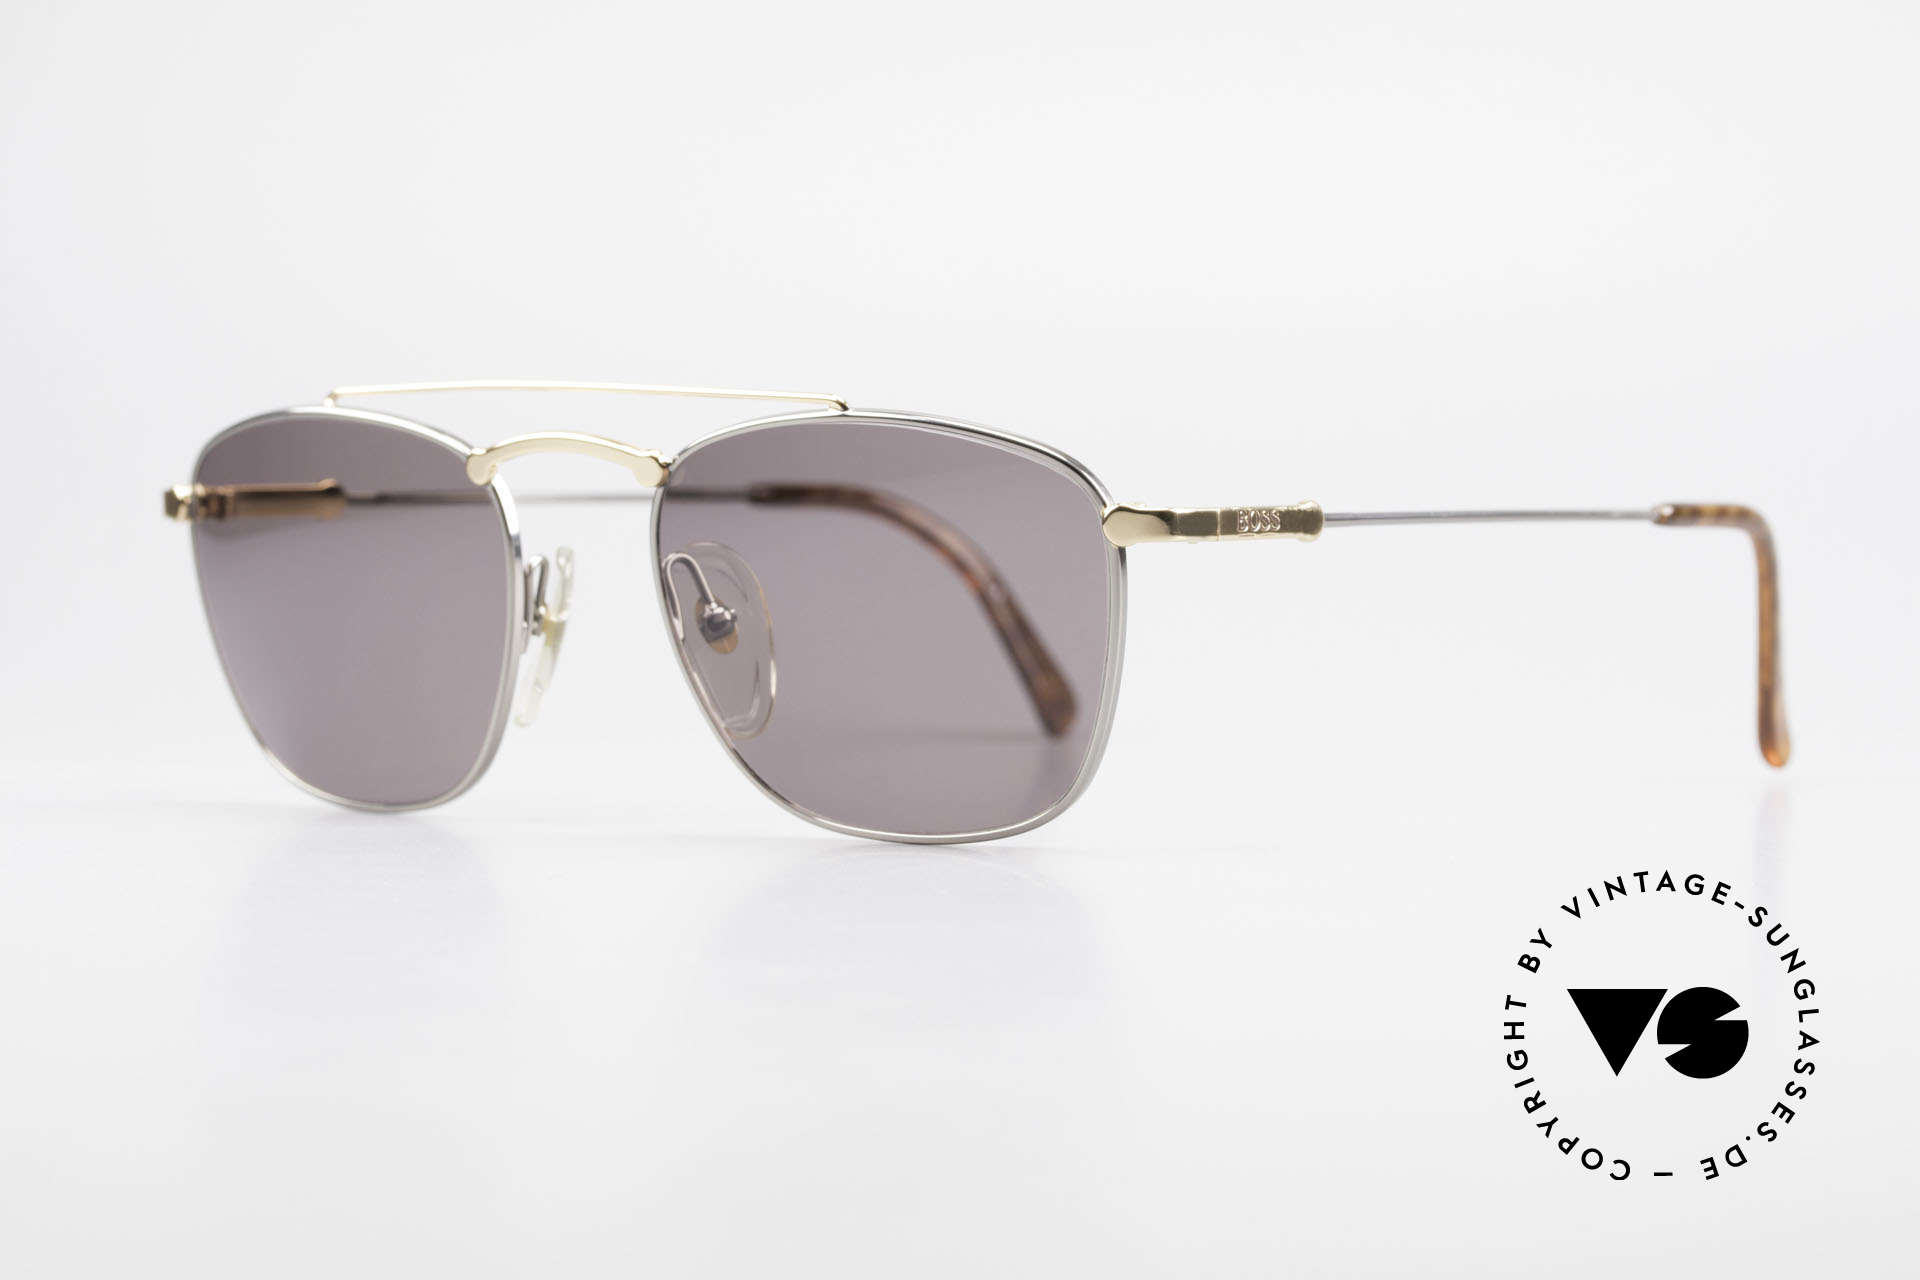 BOSS 5172 True Vintage 90's Sunglasses, bicolored metal frame: gold and silver components, Made for Men